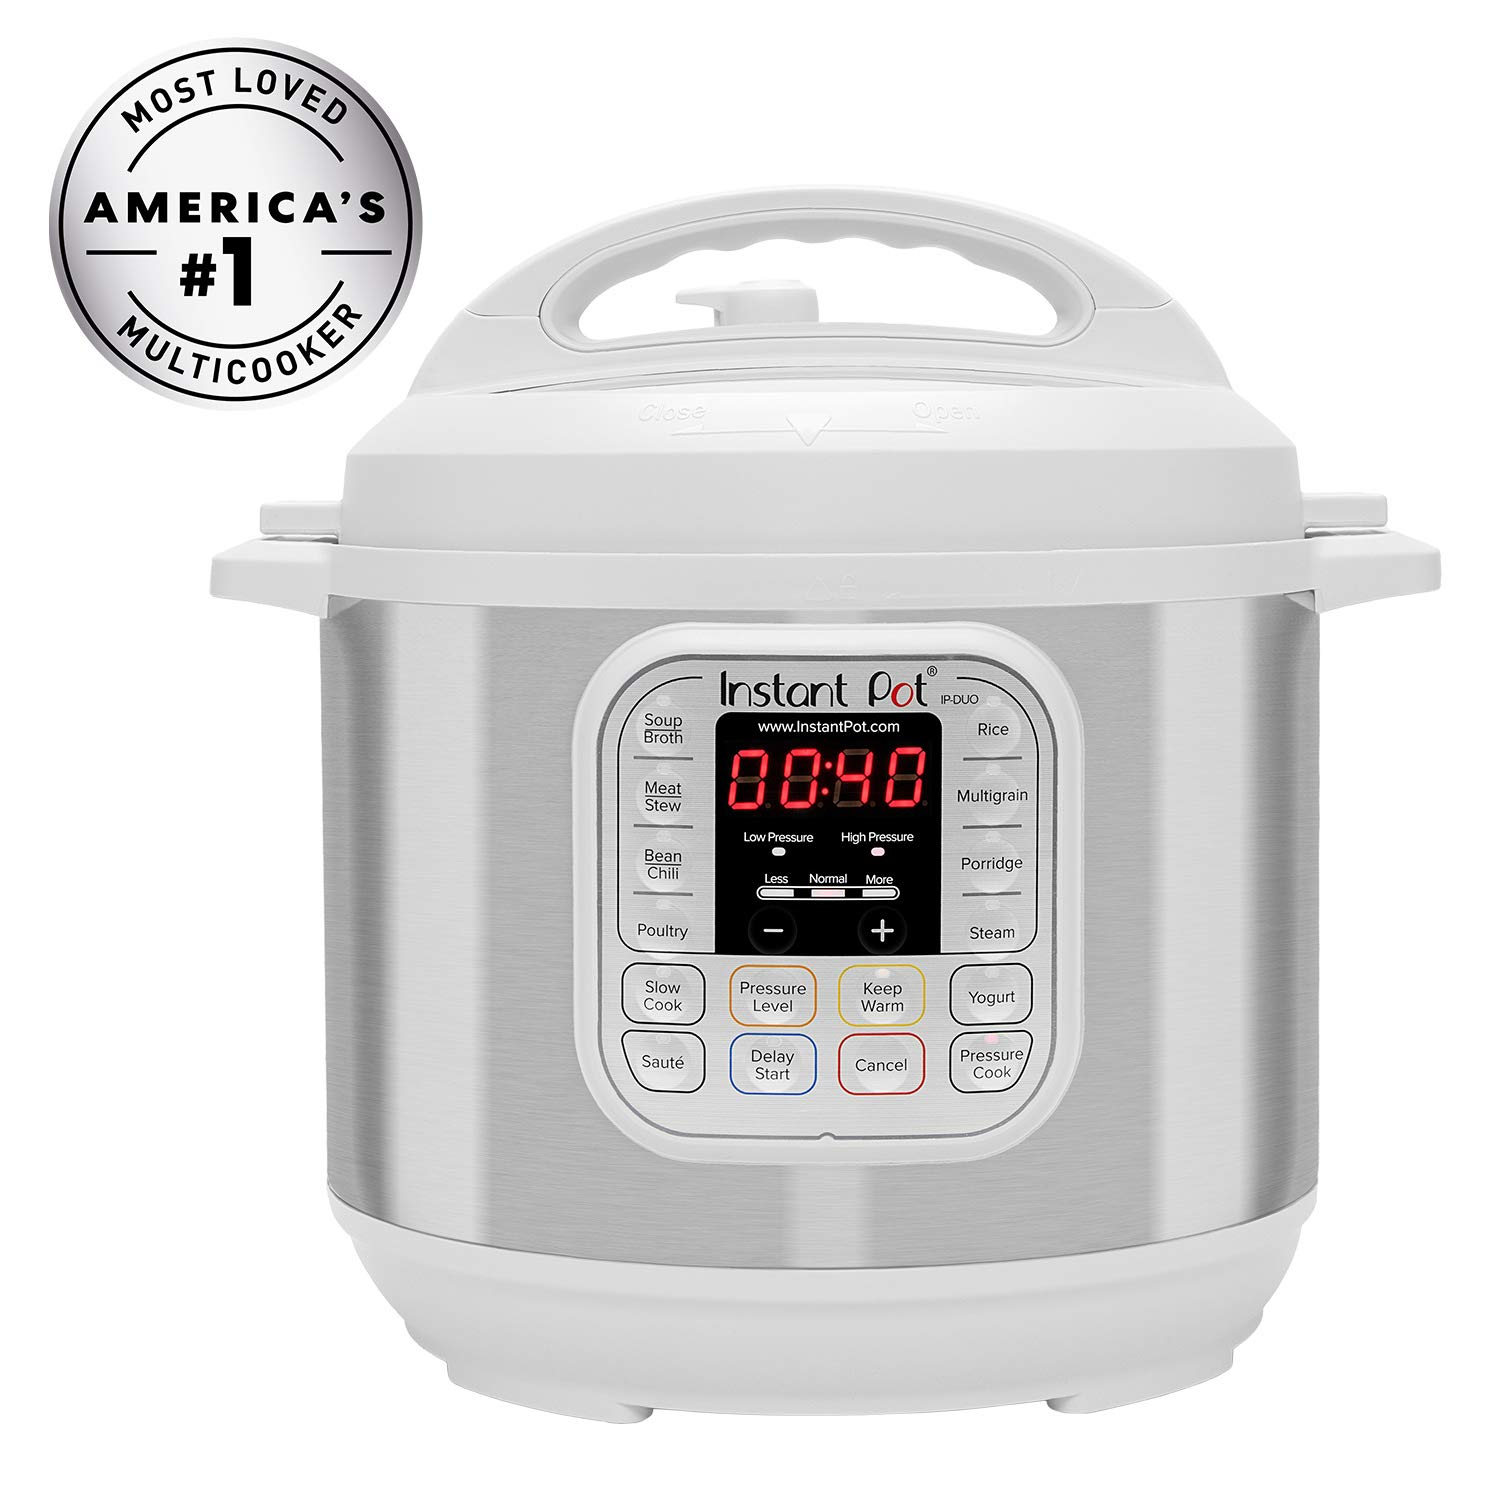 Instant Pot Duo 60 WHITE 6 Qt 7-in-1 Multi-Use Programmable Pressure, Slow, Rice Cooker, Steamer, Sauté, Yogurt Maker and Warmer, Stainless Steel by Instant Pot